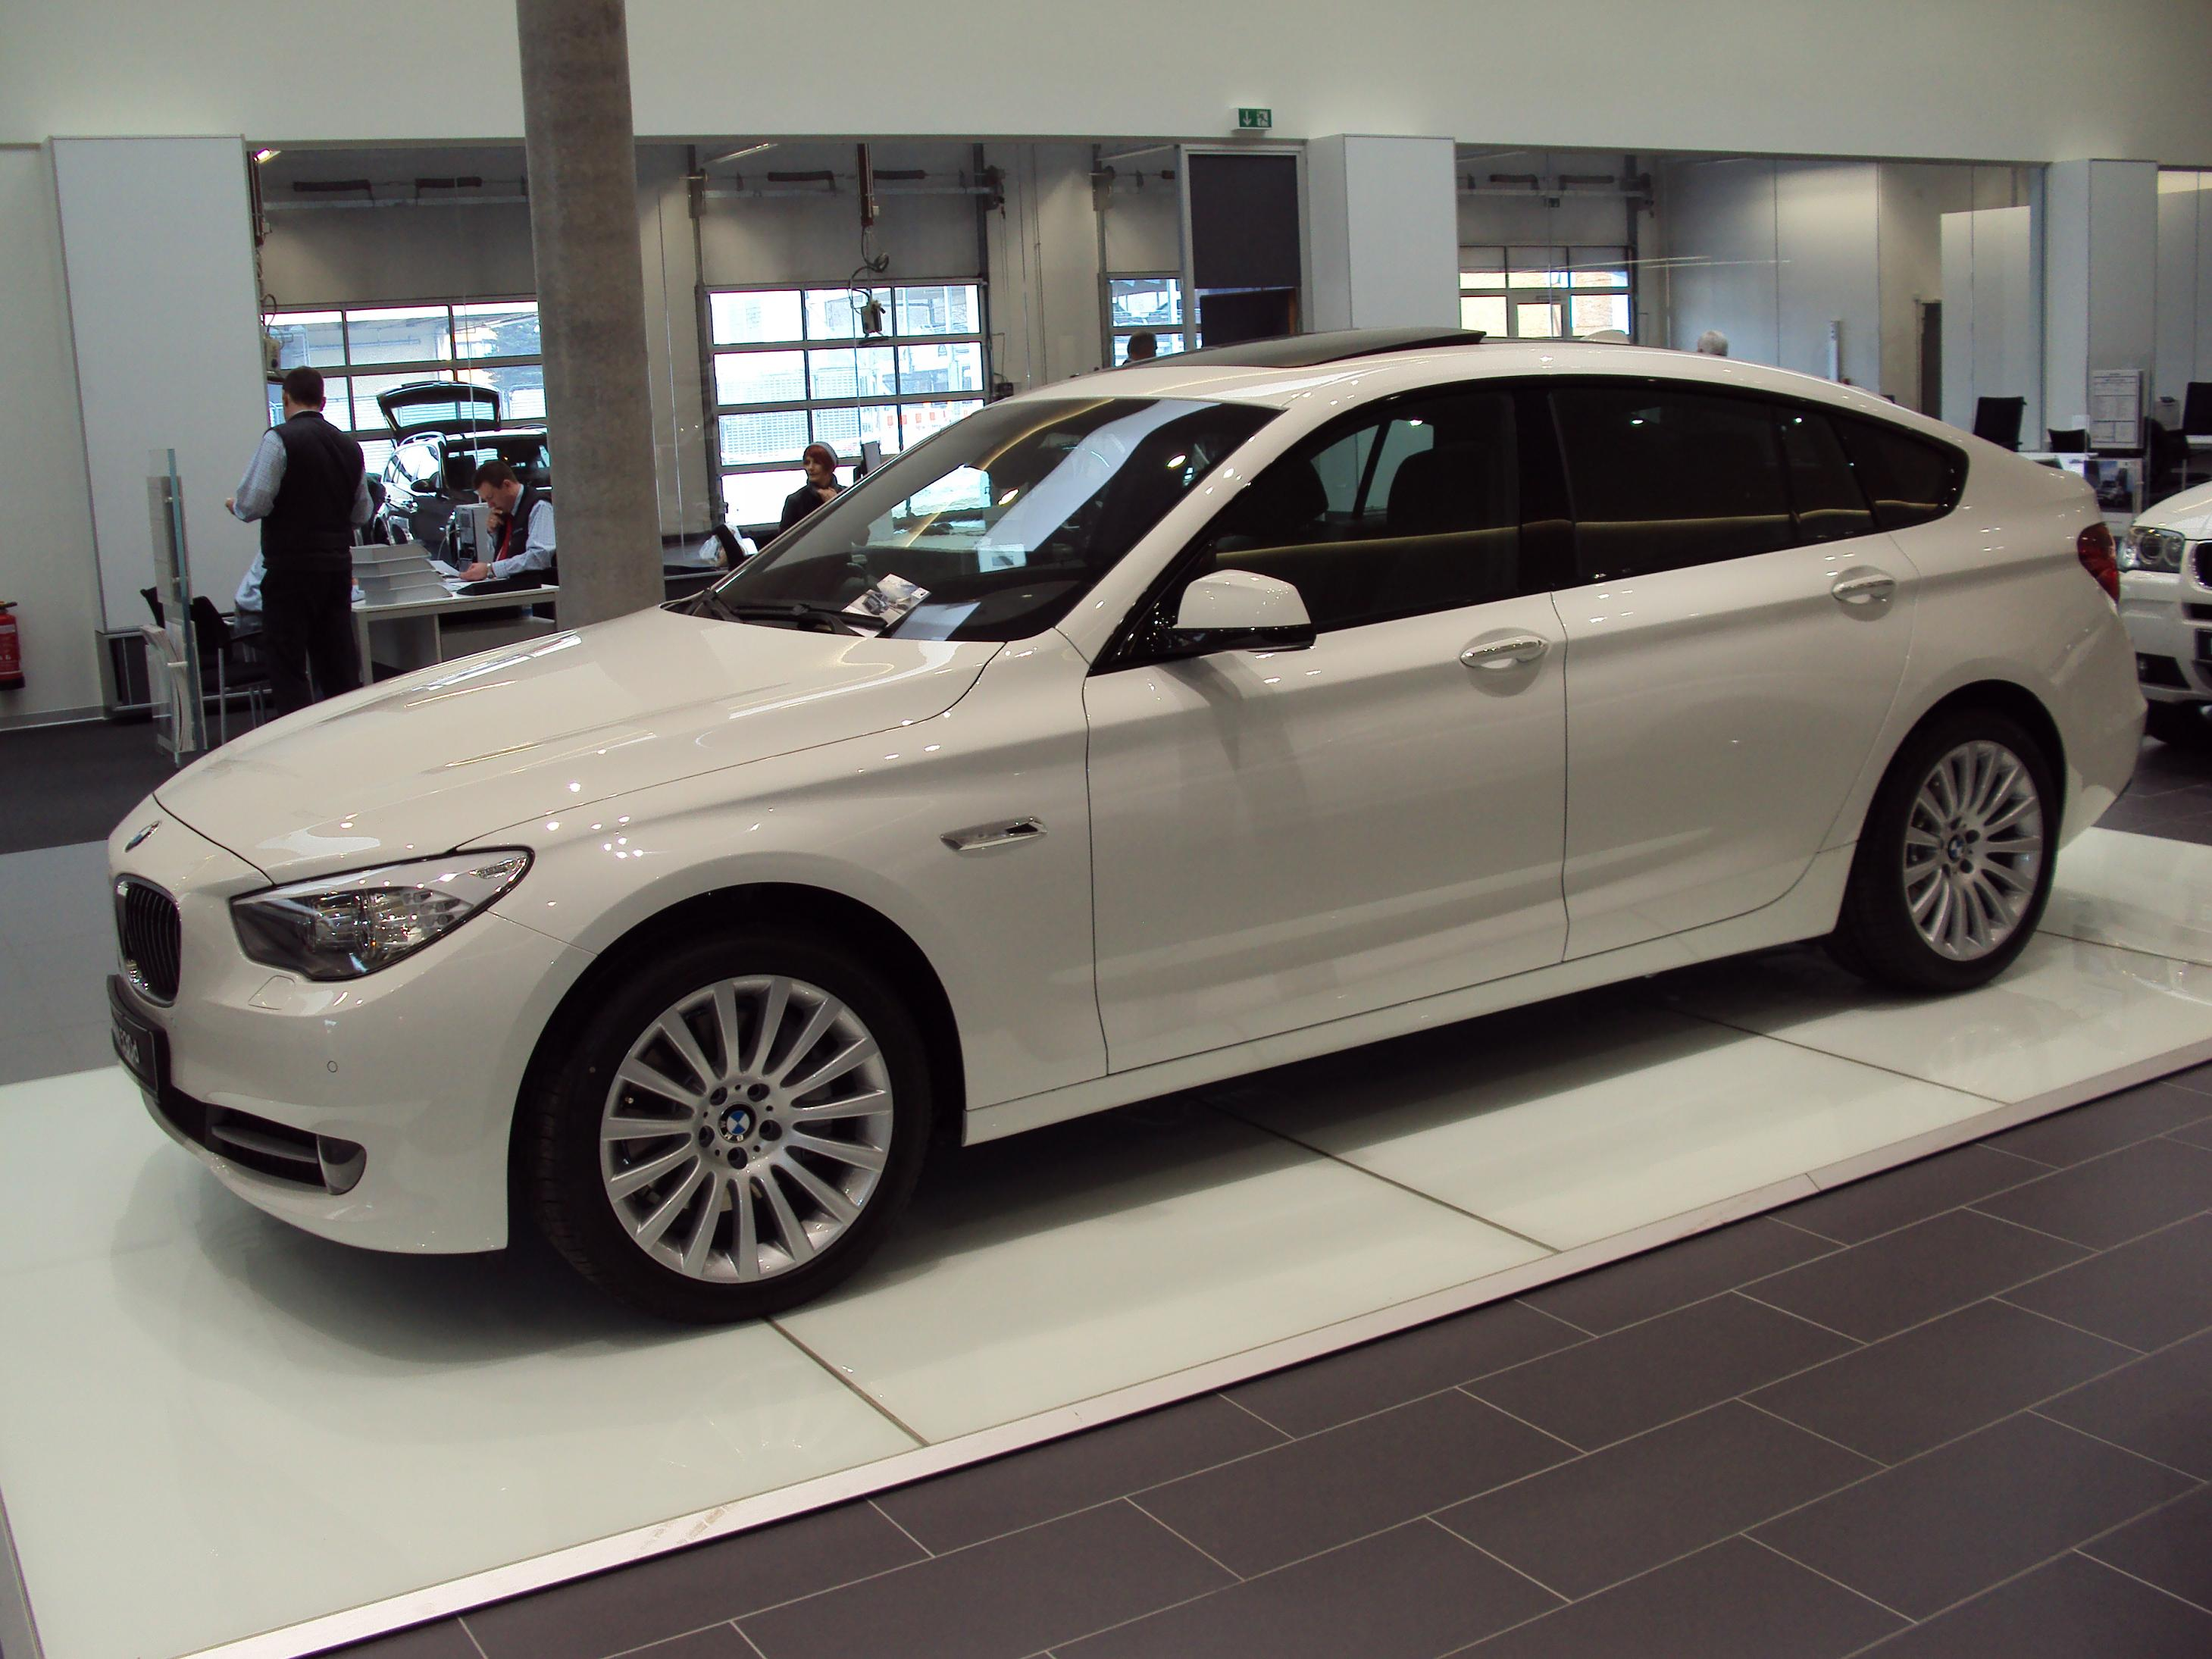 file:bmw 530d gt (4344766762) - wikimedia commons